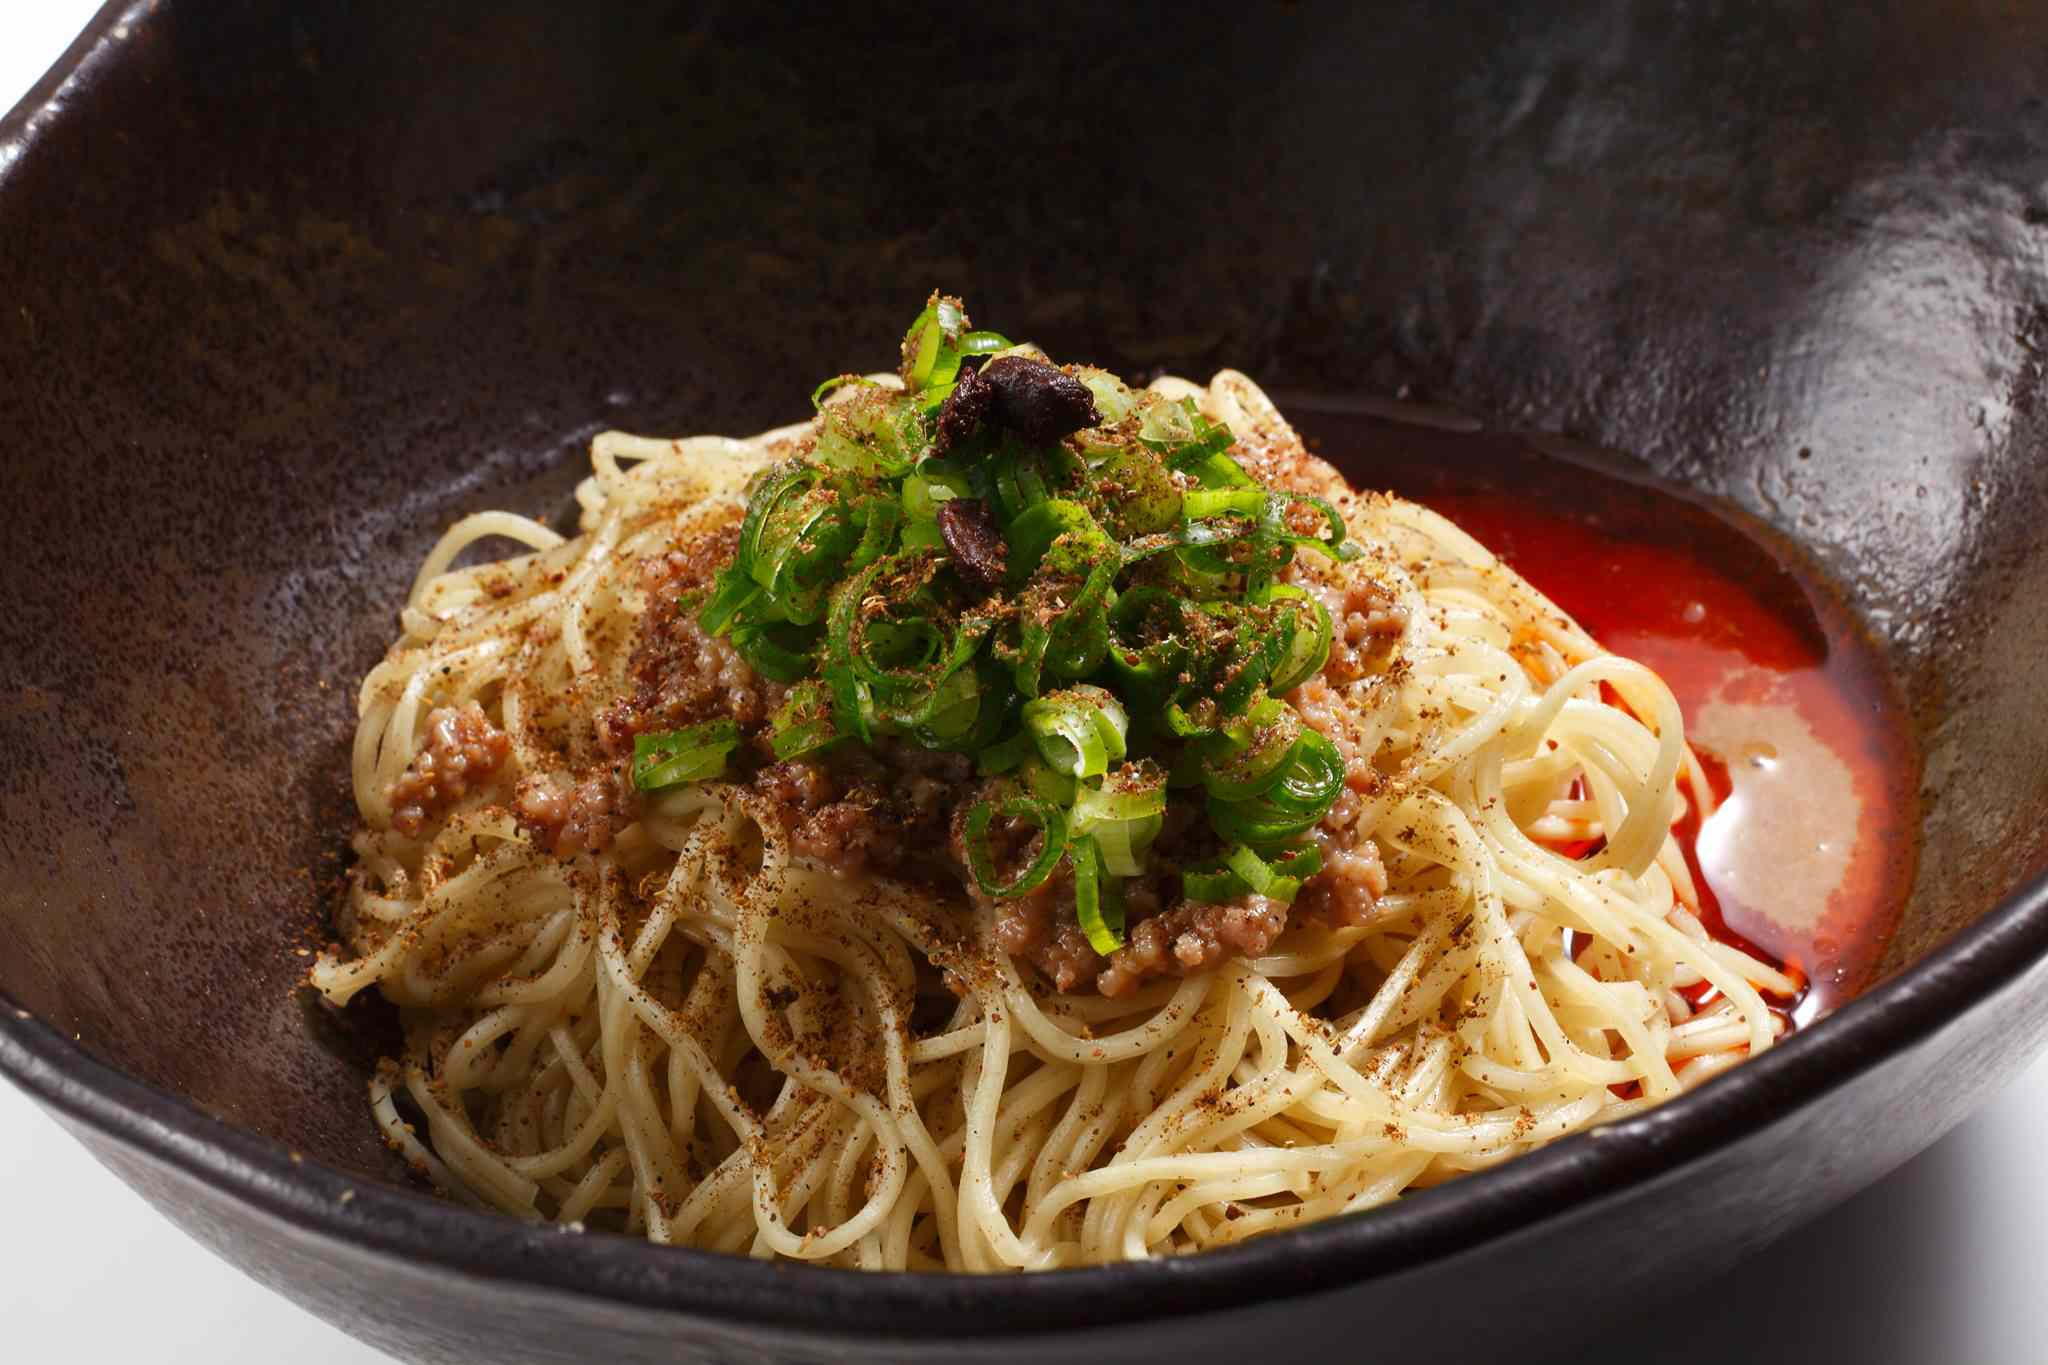 Bowl of noodles topped with seasonings and green onions with a small amount red sauce in the bottom of the bowl